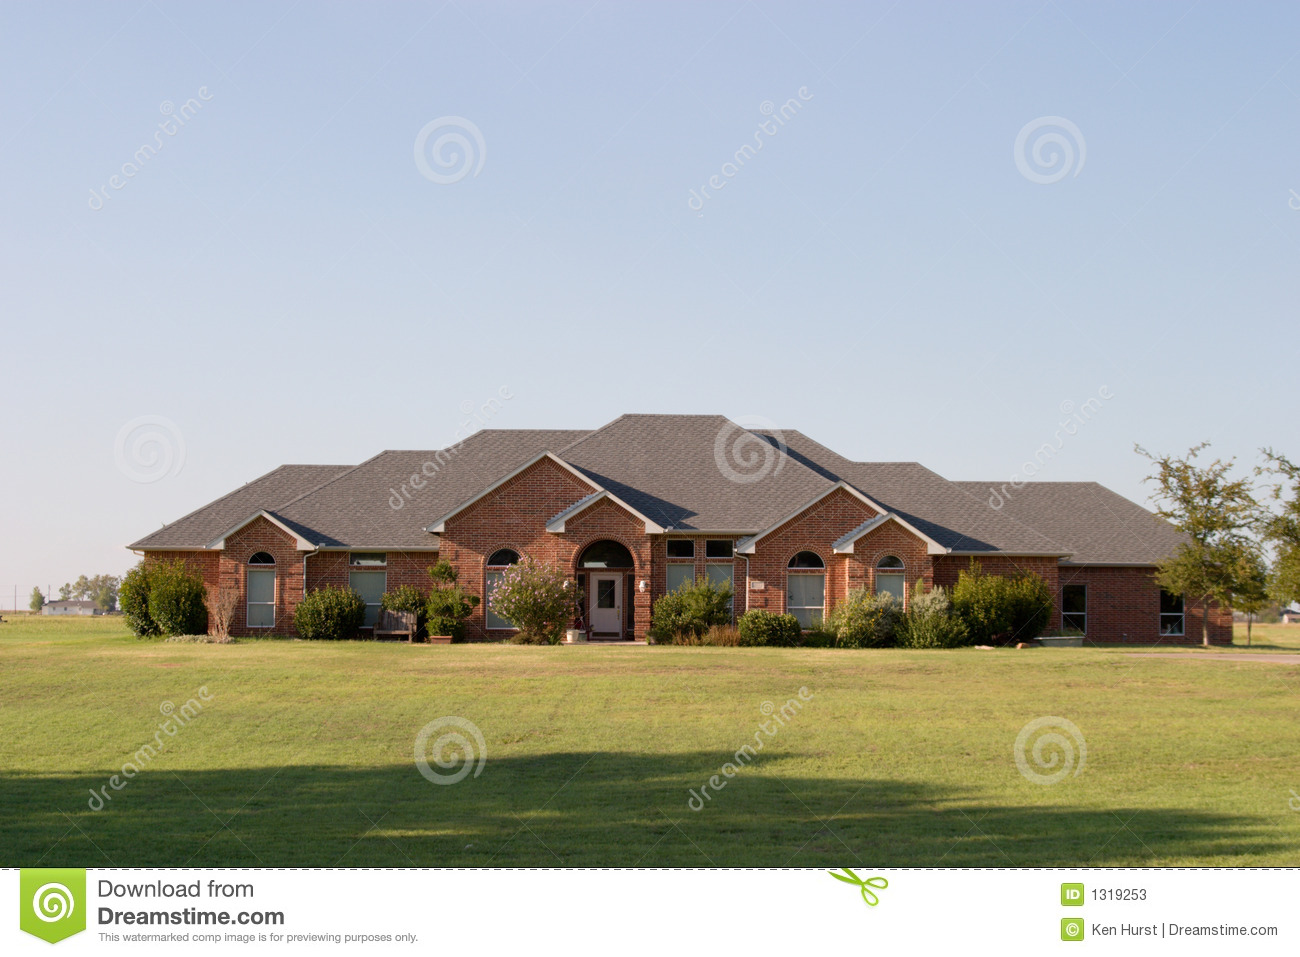 Modern large ranch style brick house stock image image for Large ranch style house plans